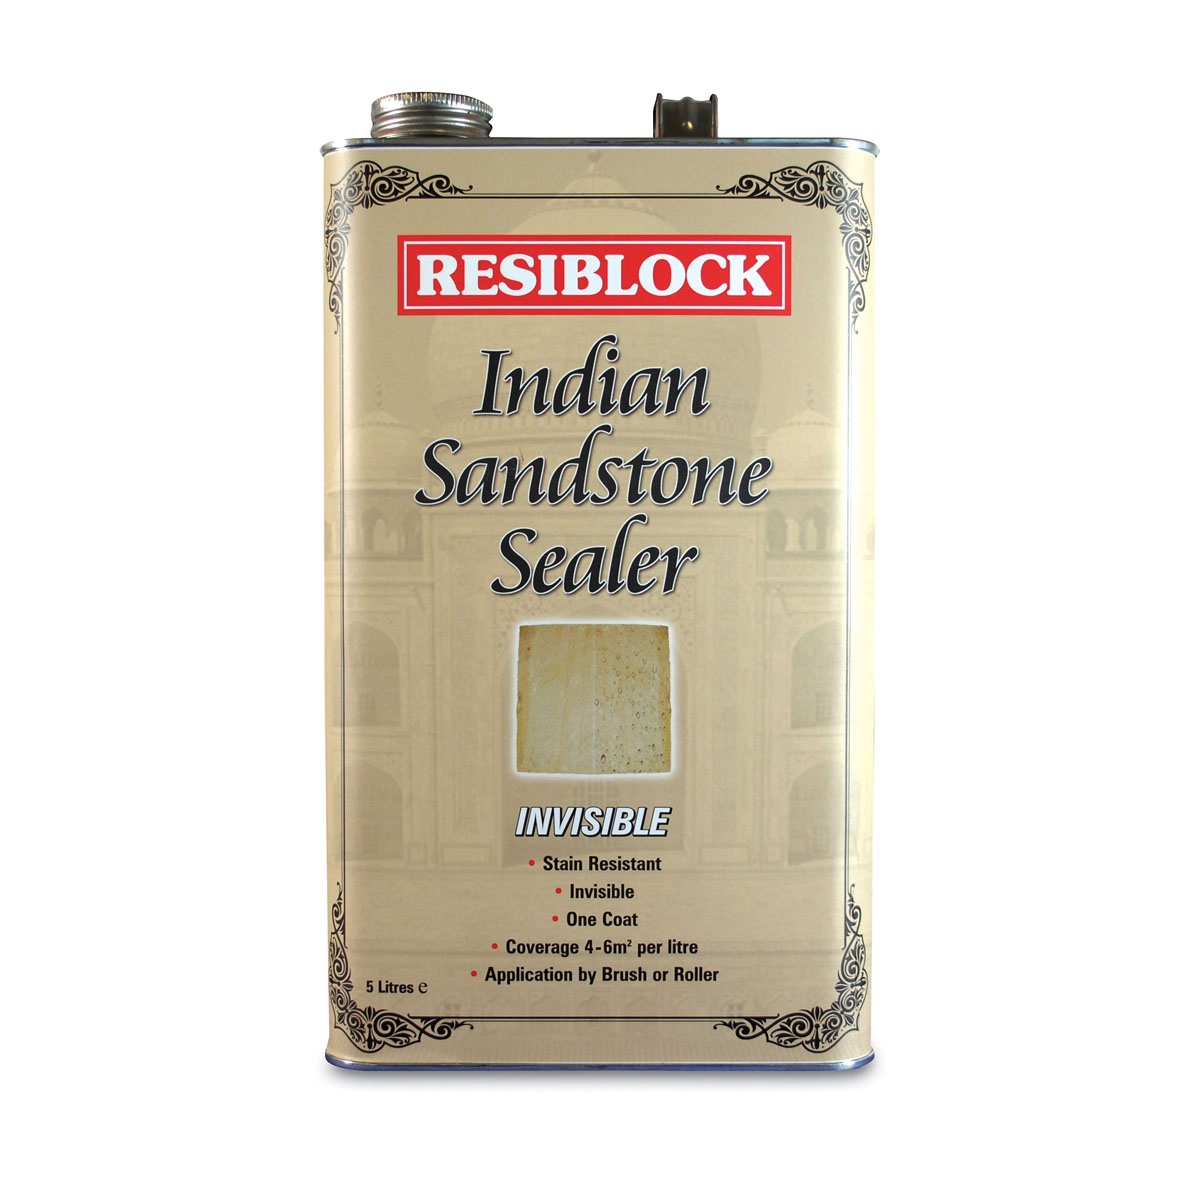 Indian Sandstone Sealer